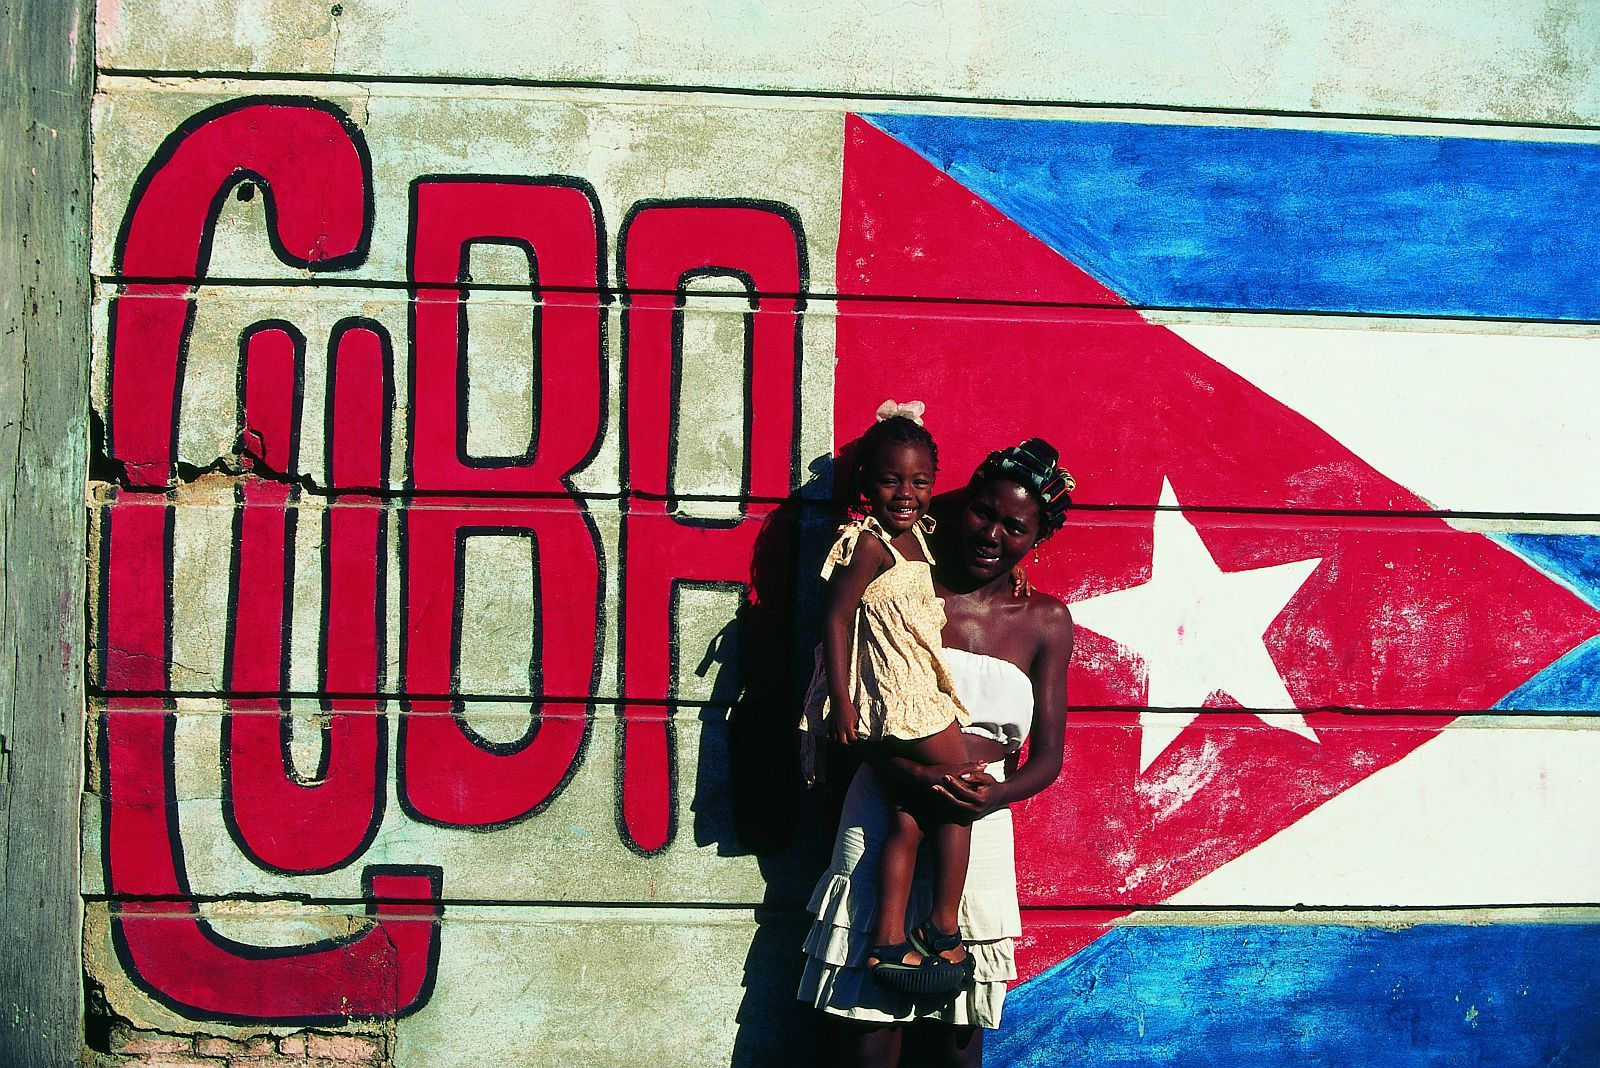 WHAT TO KNOW BEFORE YOU GO: 6 TIPS FOR TRAVELLING TO CUBA